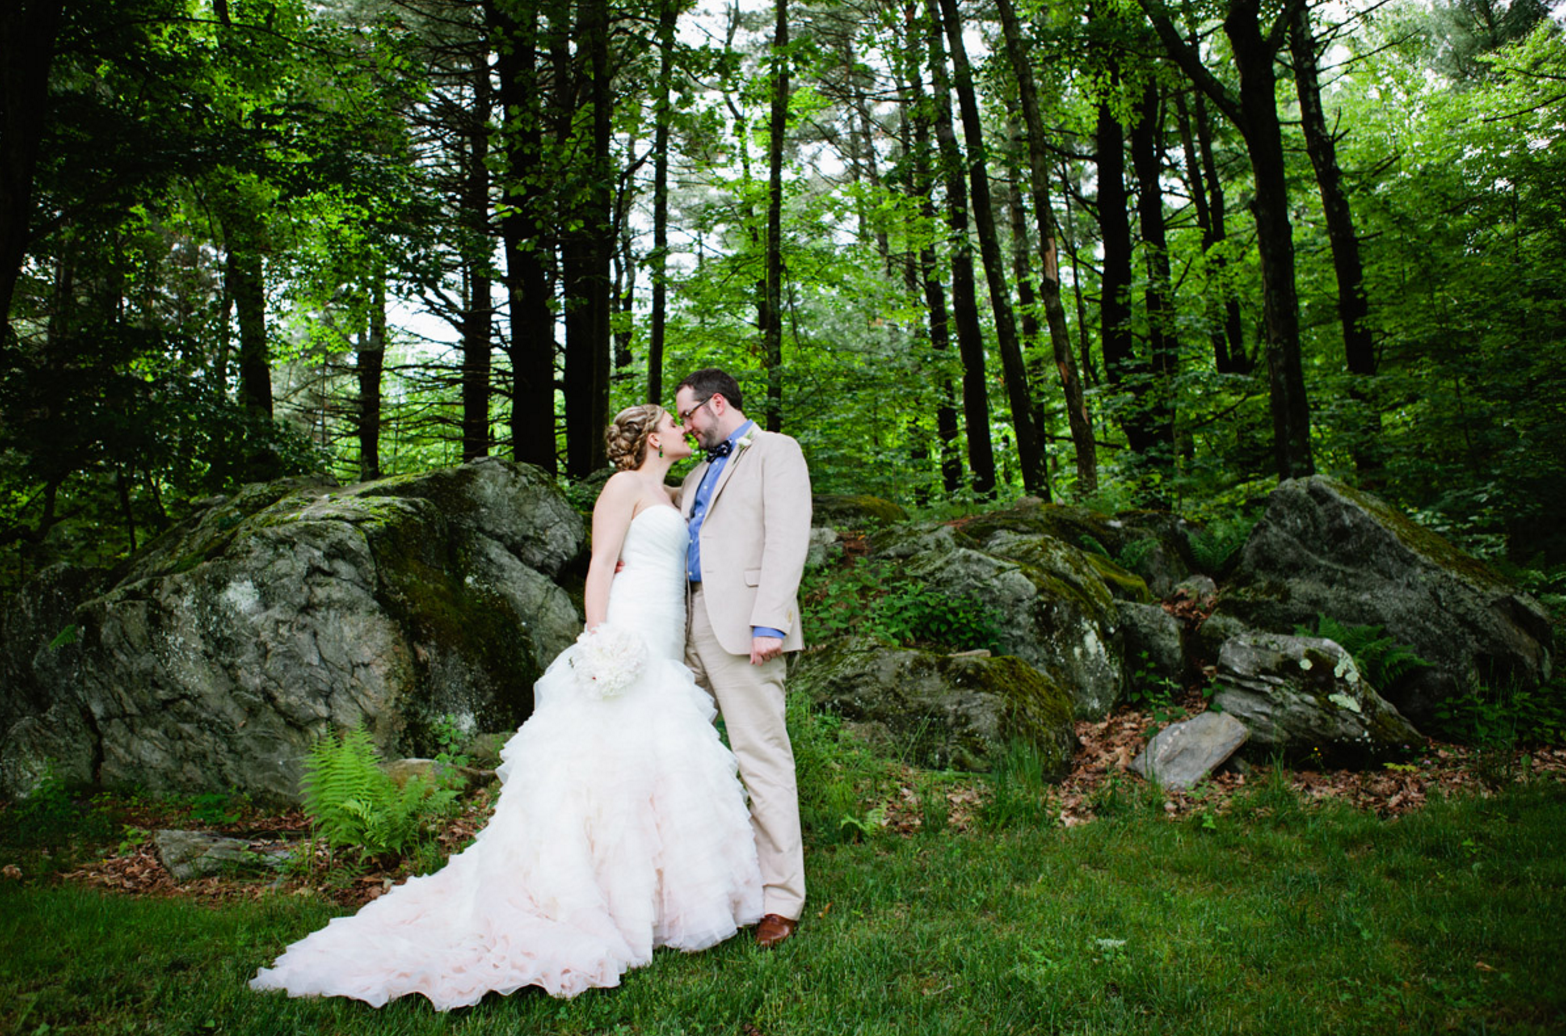 Rustic Chic DIY Affordable Foodie Outdoor Tented Weddings In Massachusetts 30 Miles West Of Boston